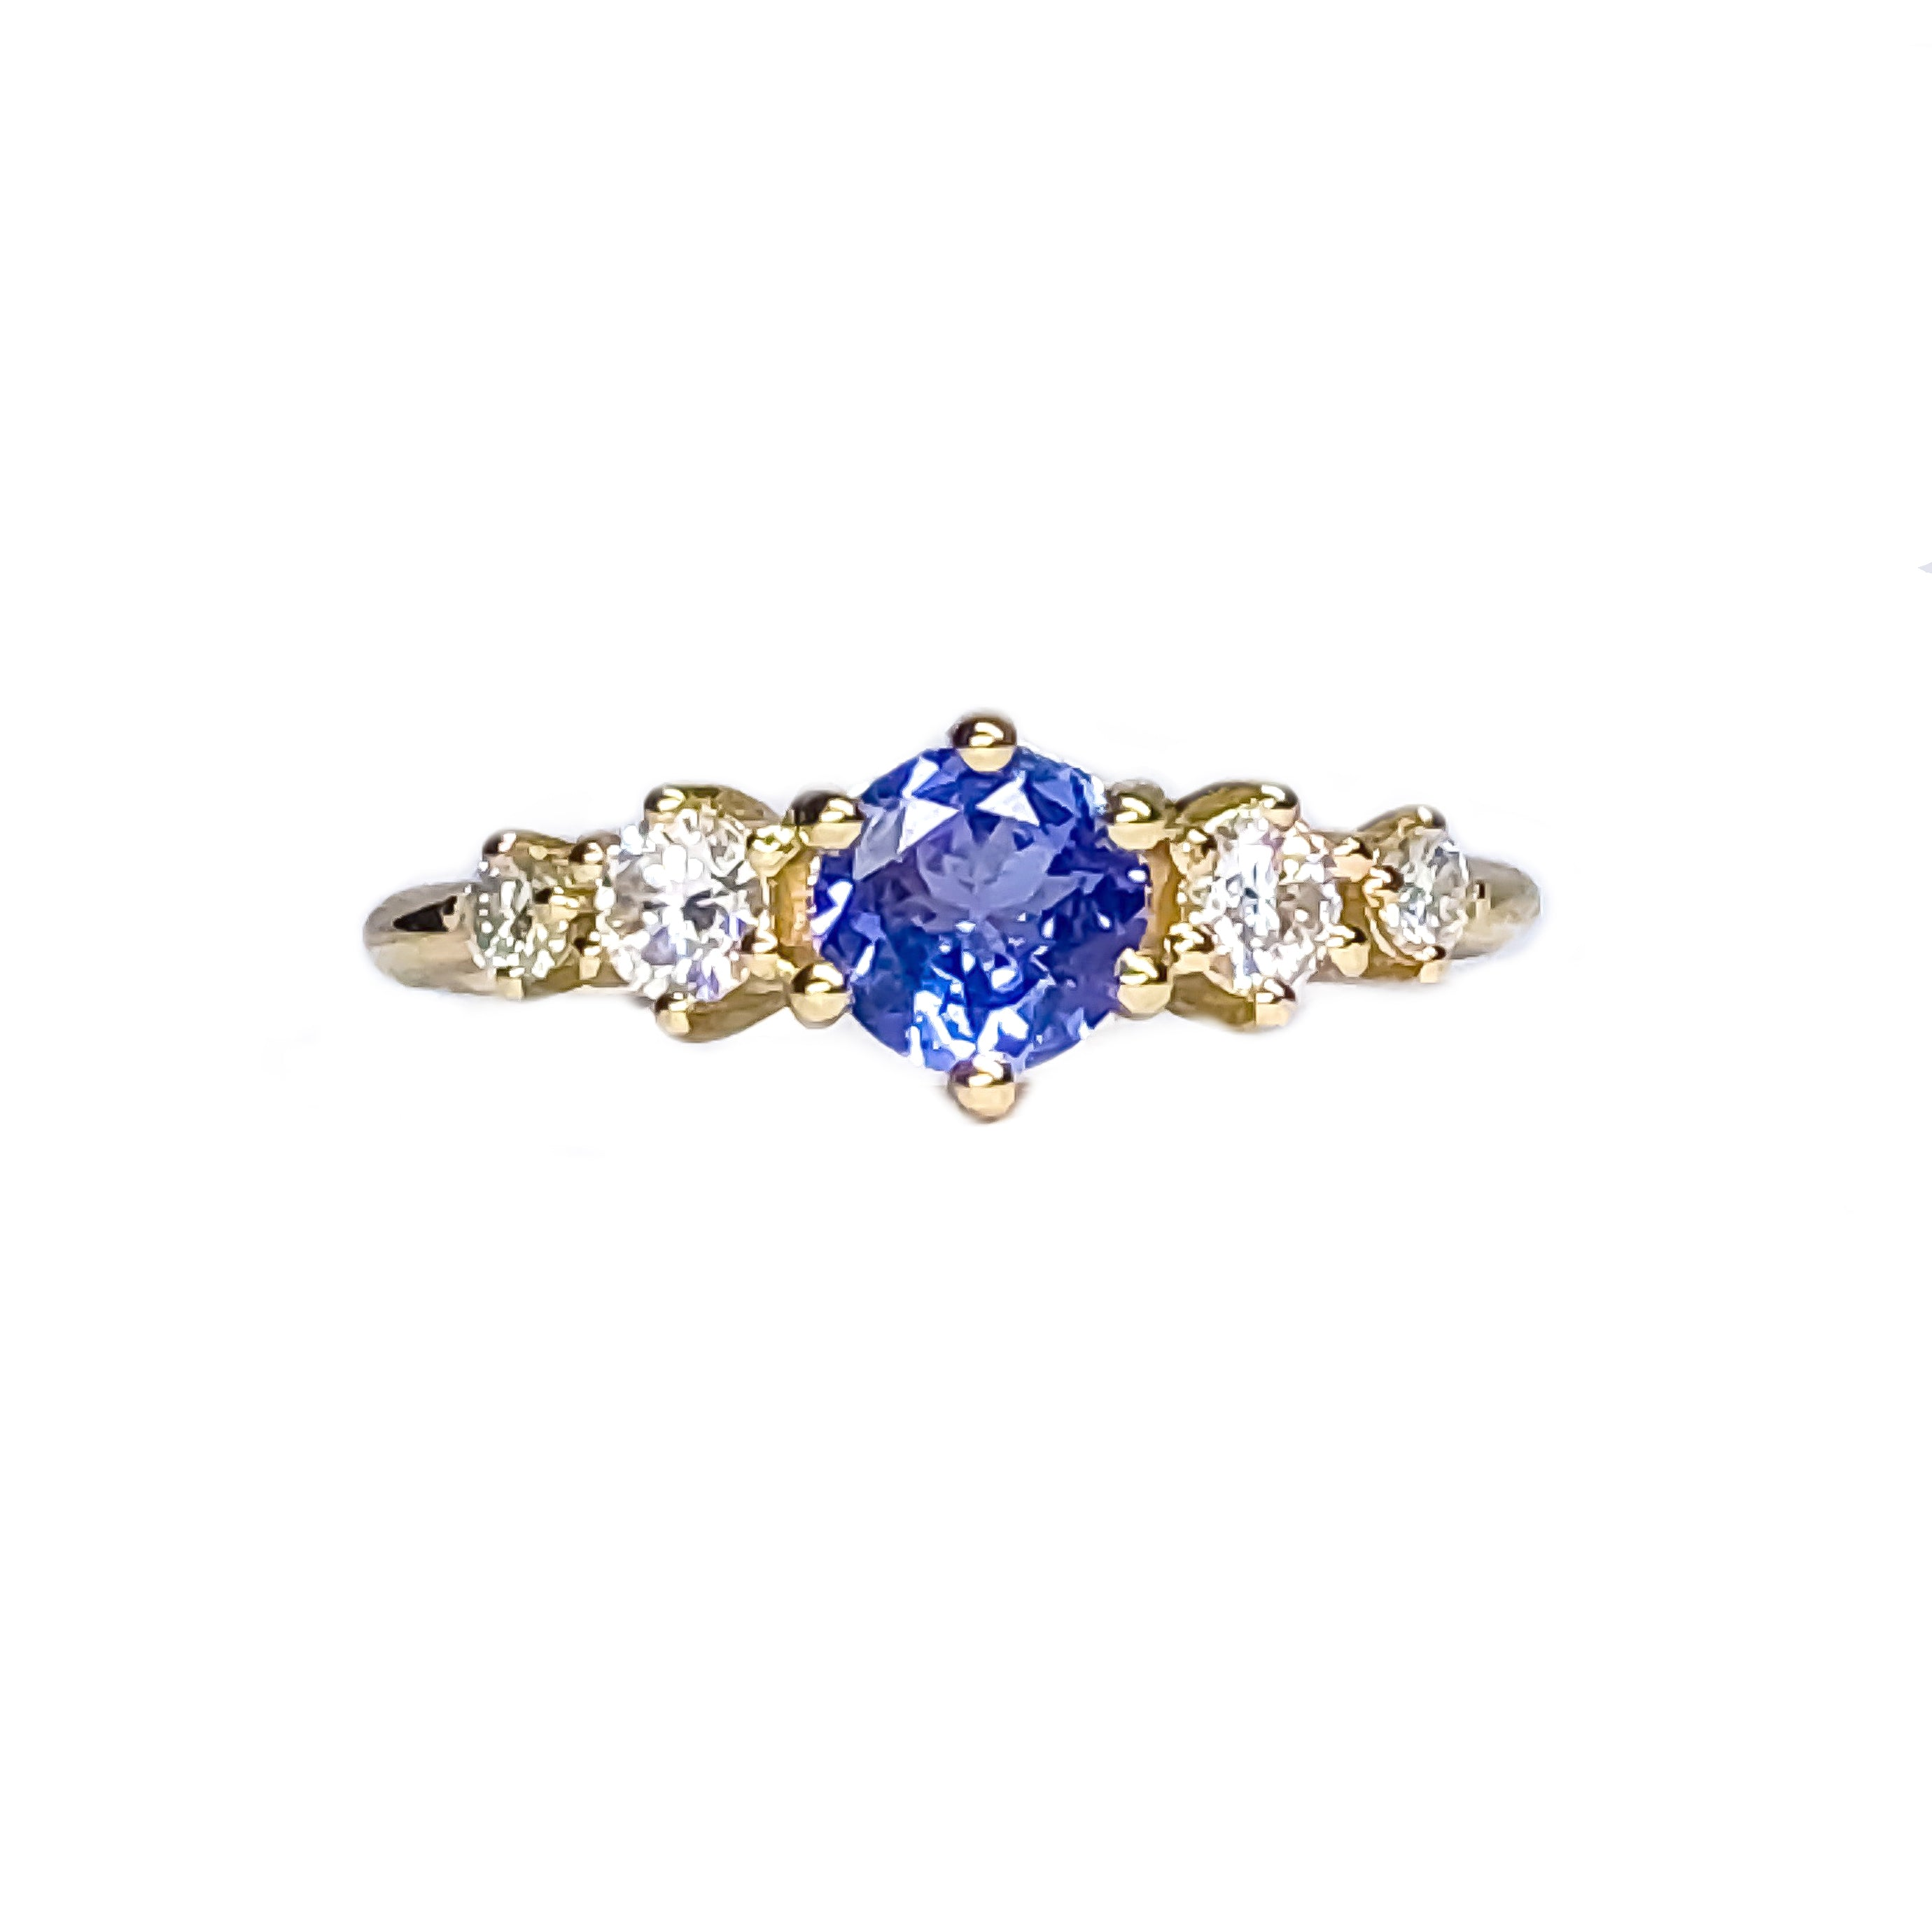 Betty Tanzanite Mossanite Ring - Manari Design